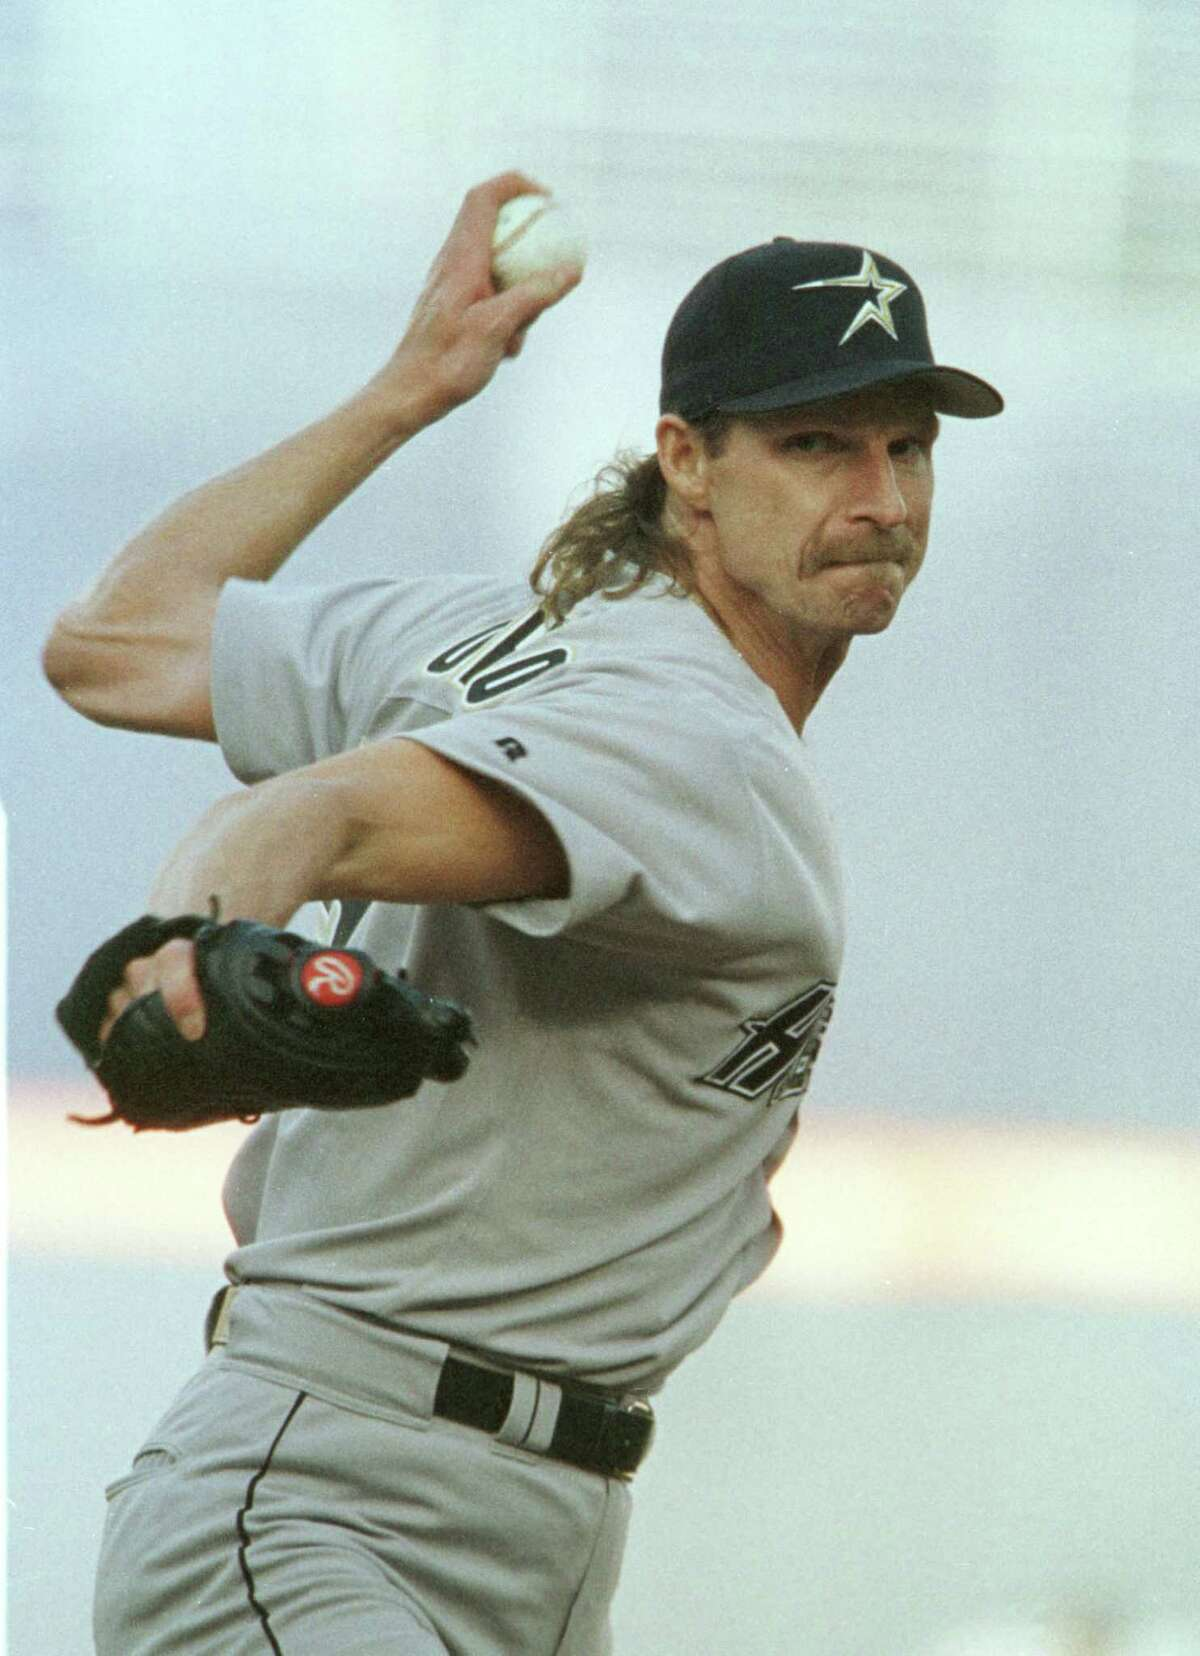 Randy Johnson's tenure in an Astros uniform in 1998 may have been short in duration, but it was long on drama.